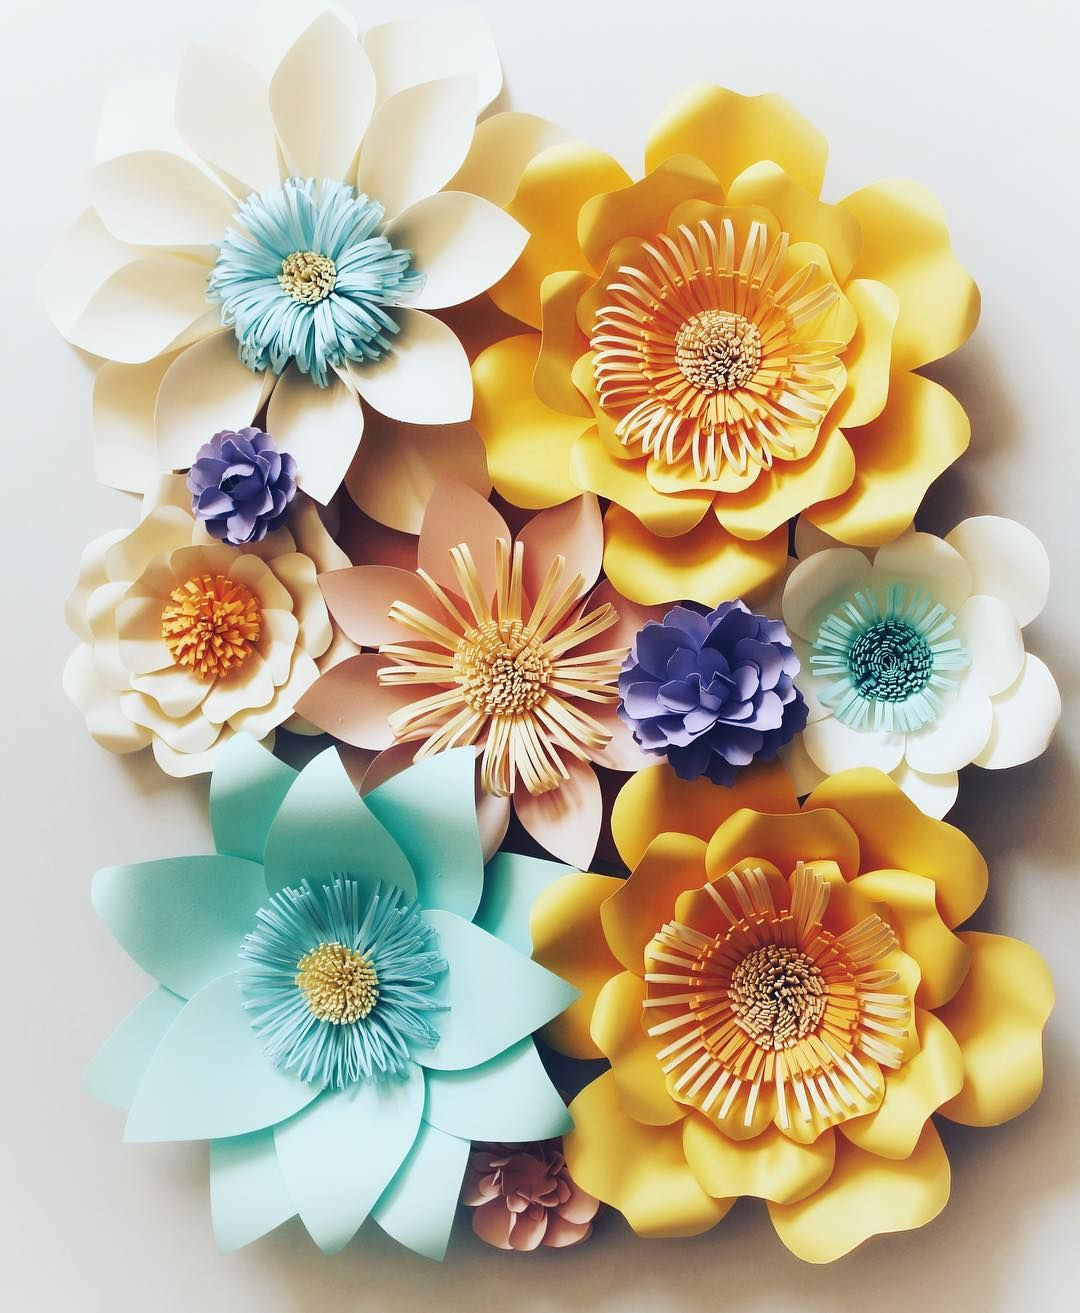 New Paper Flowers For Birthday Party Backdrop Paperdecor